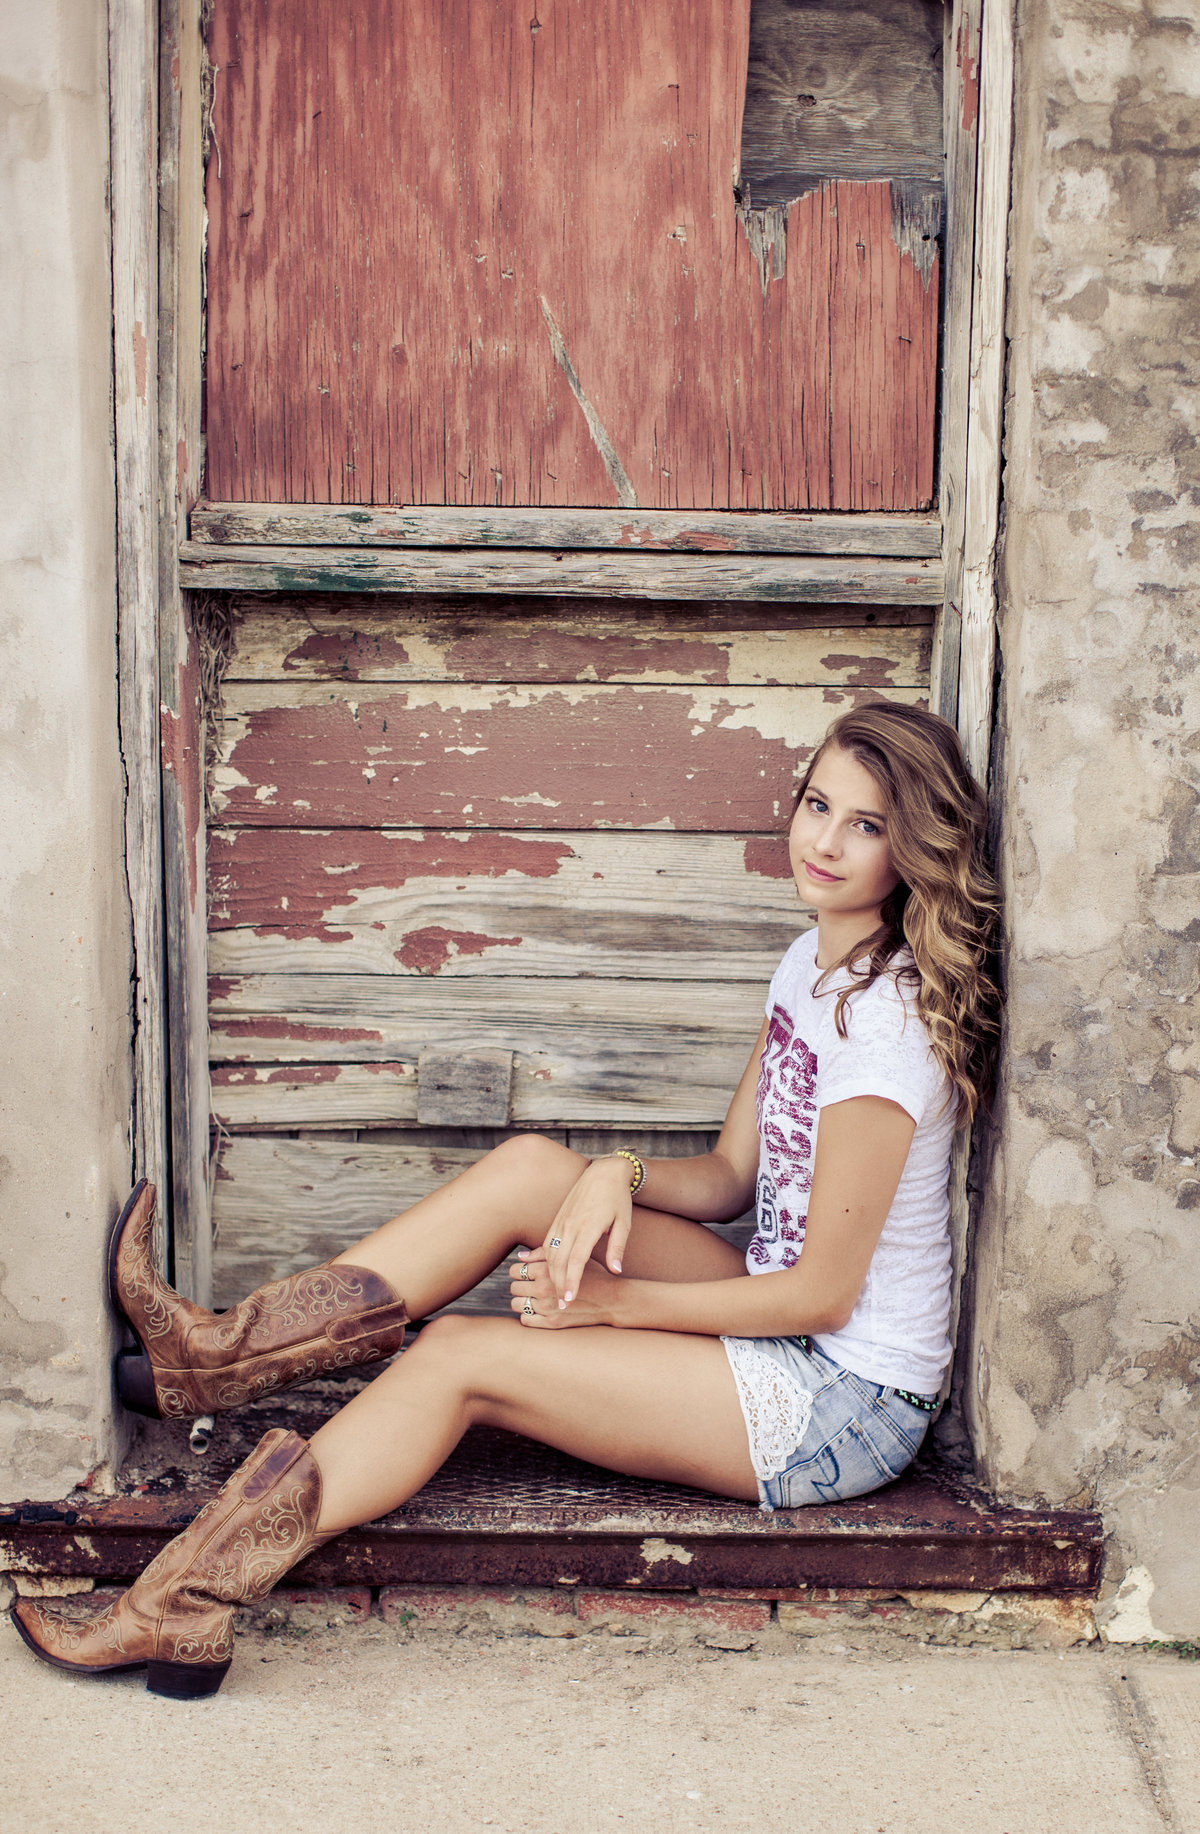 Girl in rustic doorway in cowboy boots